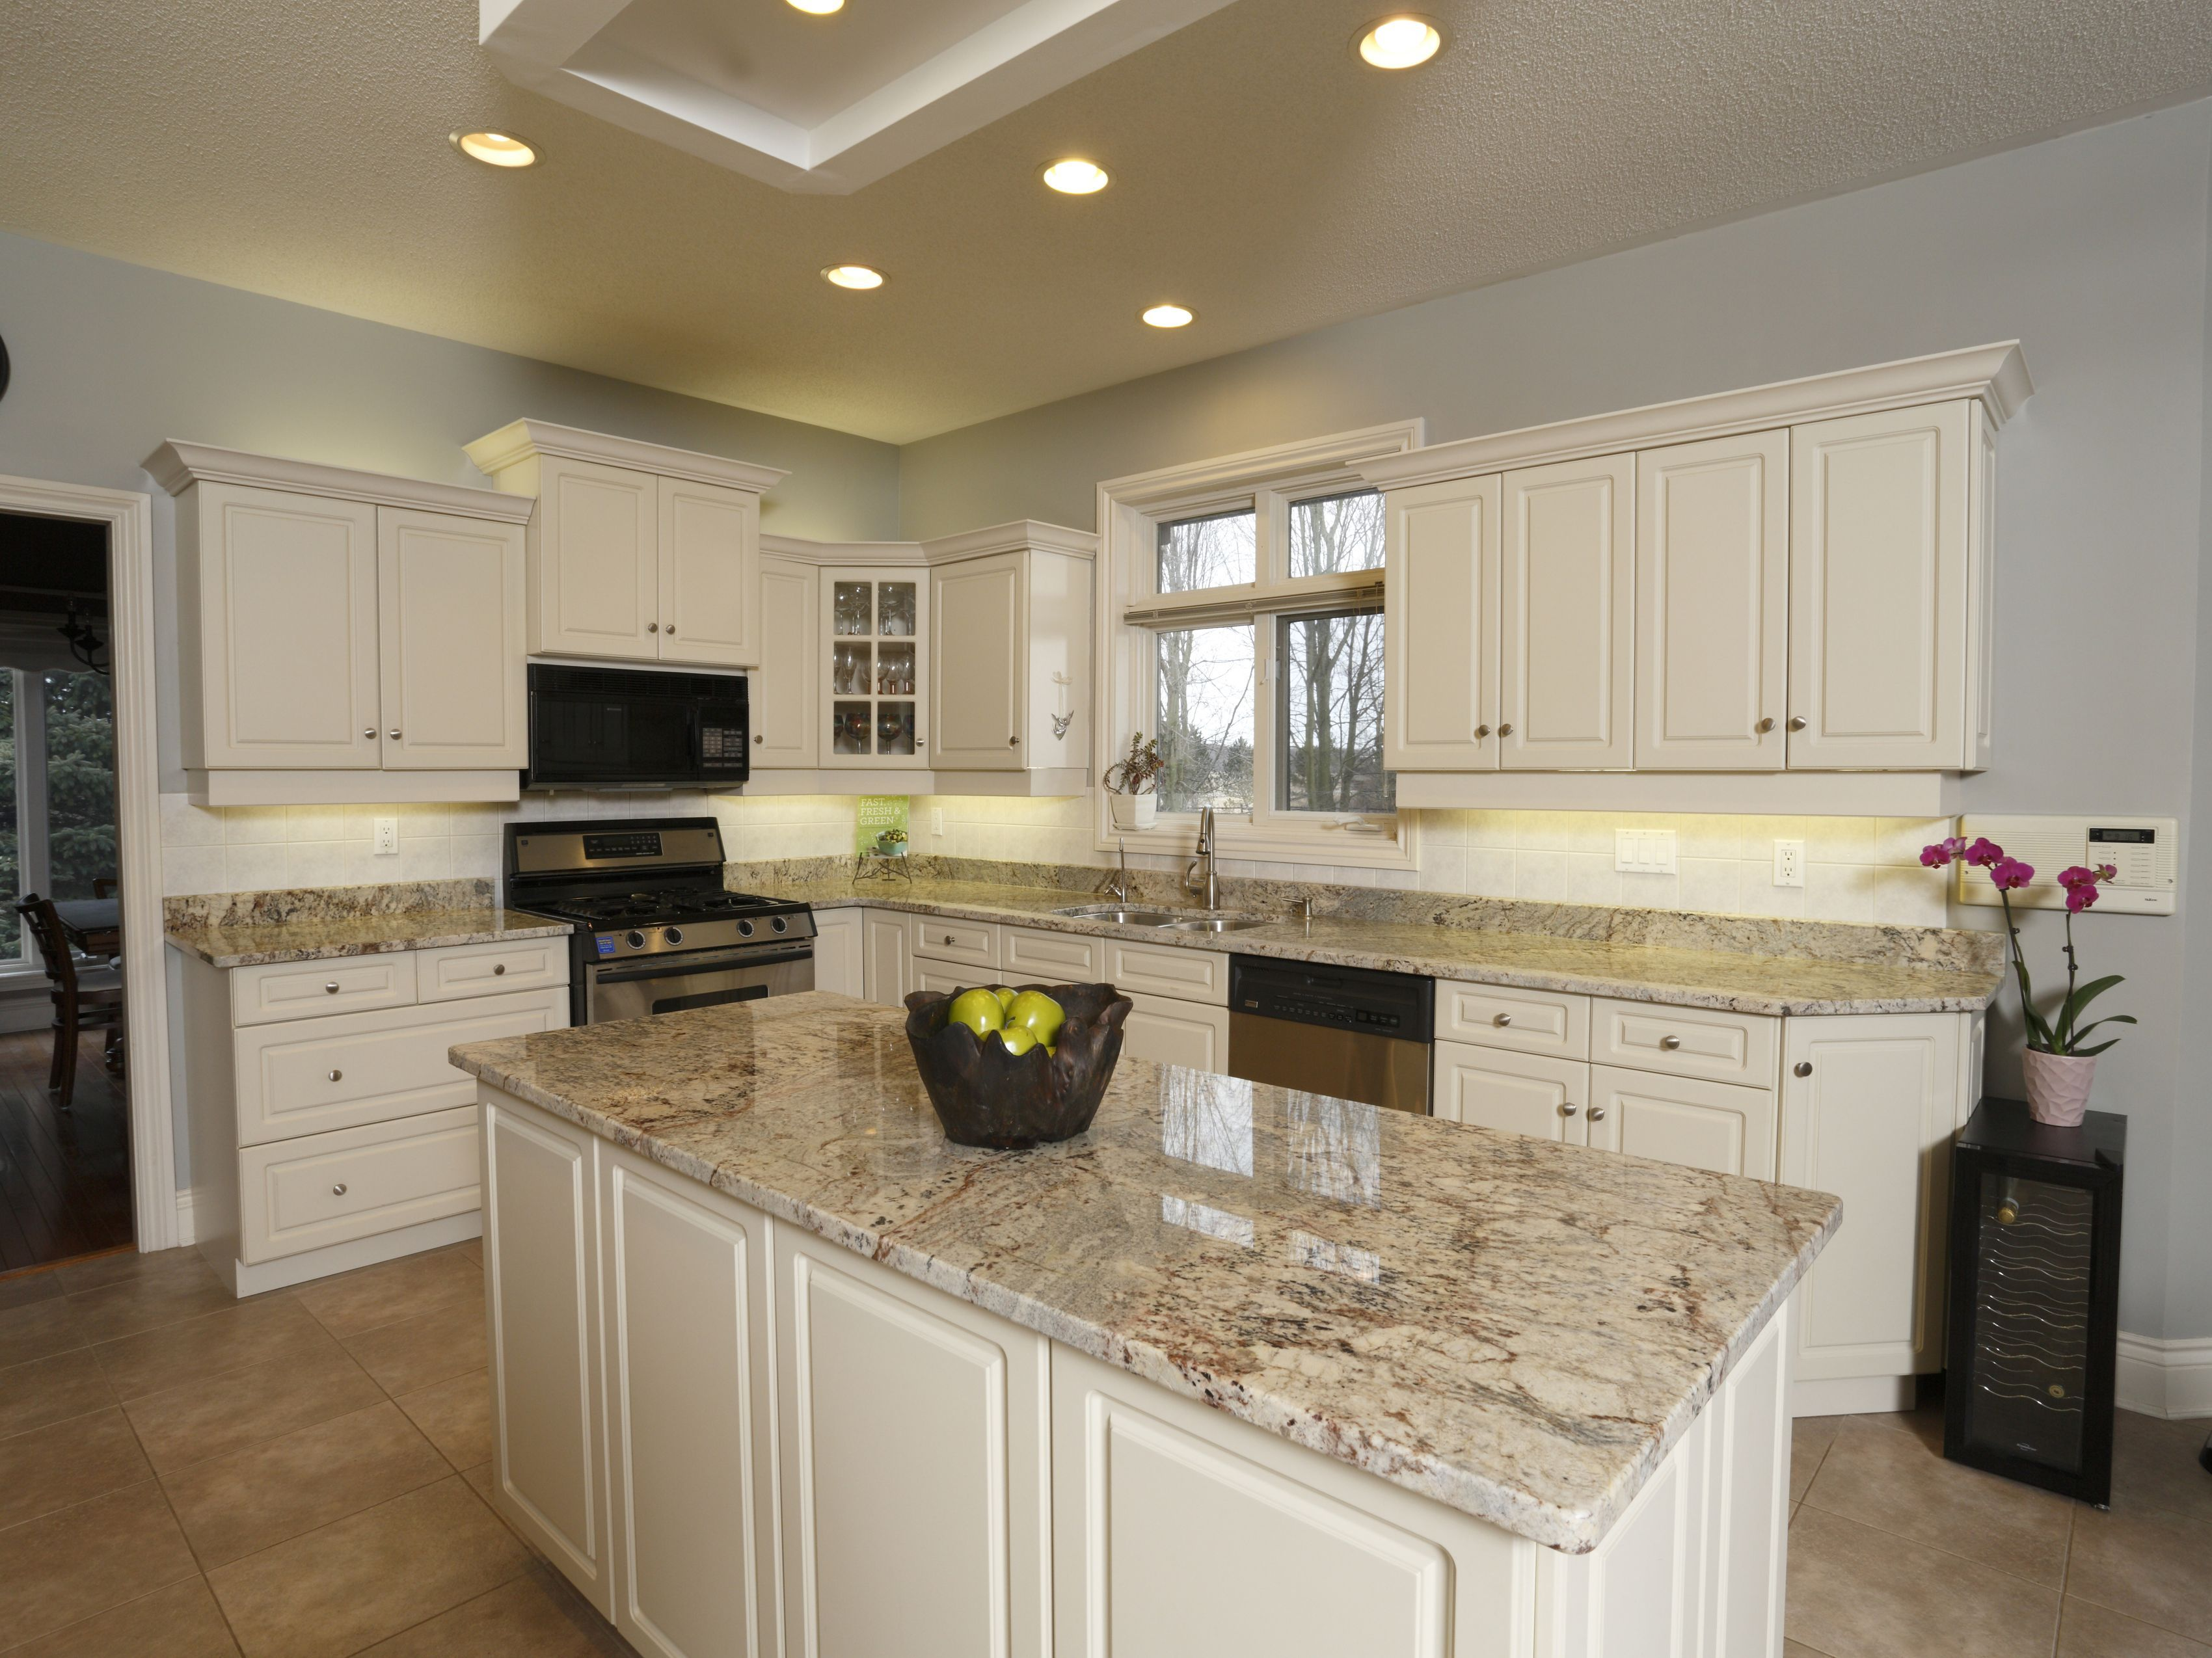 Exquisite Home Designers. Exquisite Home Design With Sienna Bordeaux Granite  Fresh Kitchen White Cabinet And